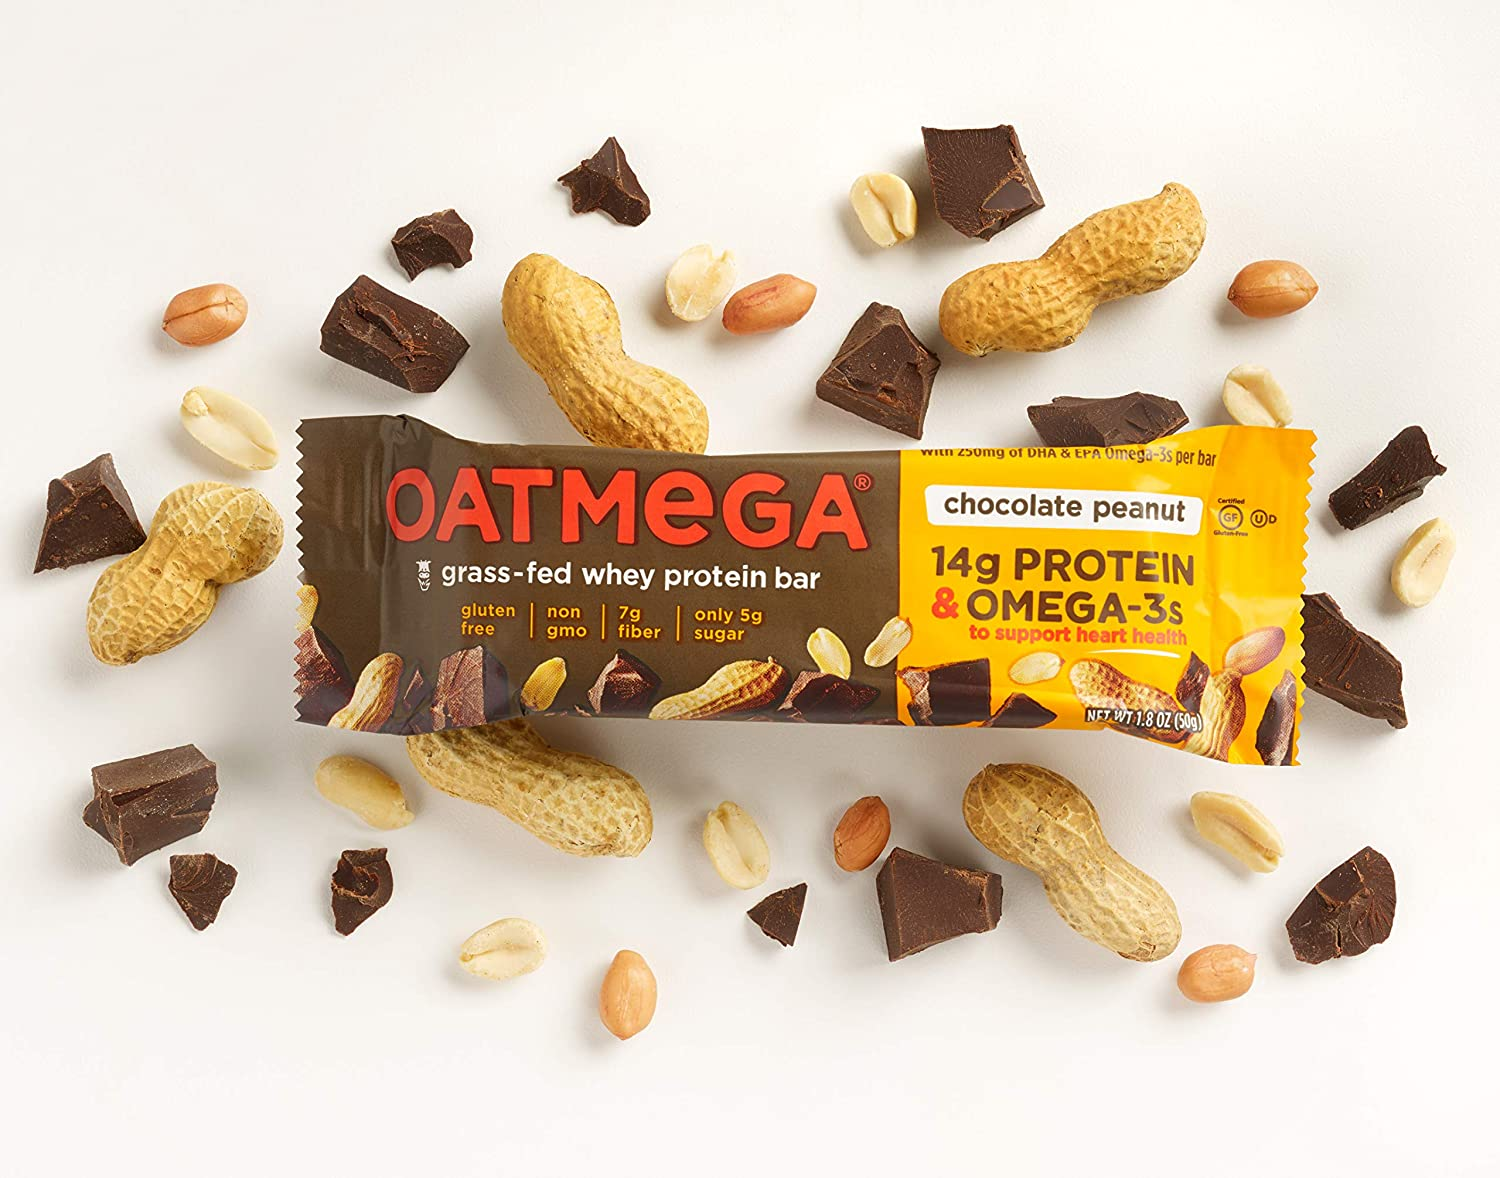 OATMEGA Protein Bar, Chocolate Peanut, Energy Bars Made with Omega-3 and Grass-Fed Whey Protein, Healthy Snacks, Gluten Free Protein Bars, Whey Protein Bars, Nutrition Bars, 1.8 ounce 12 Count